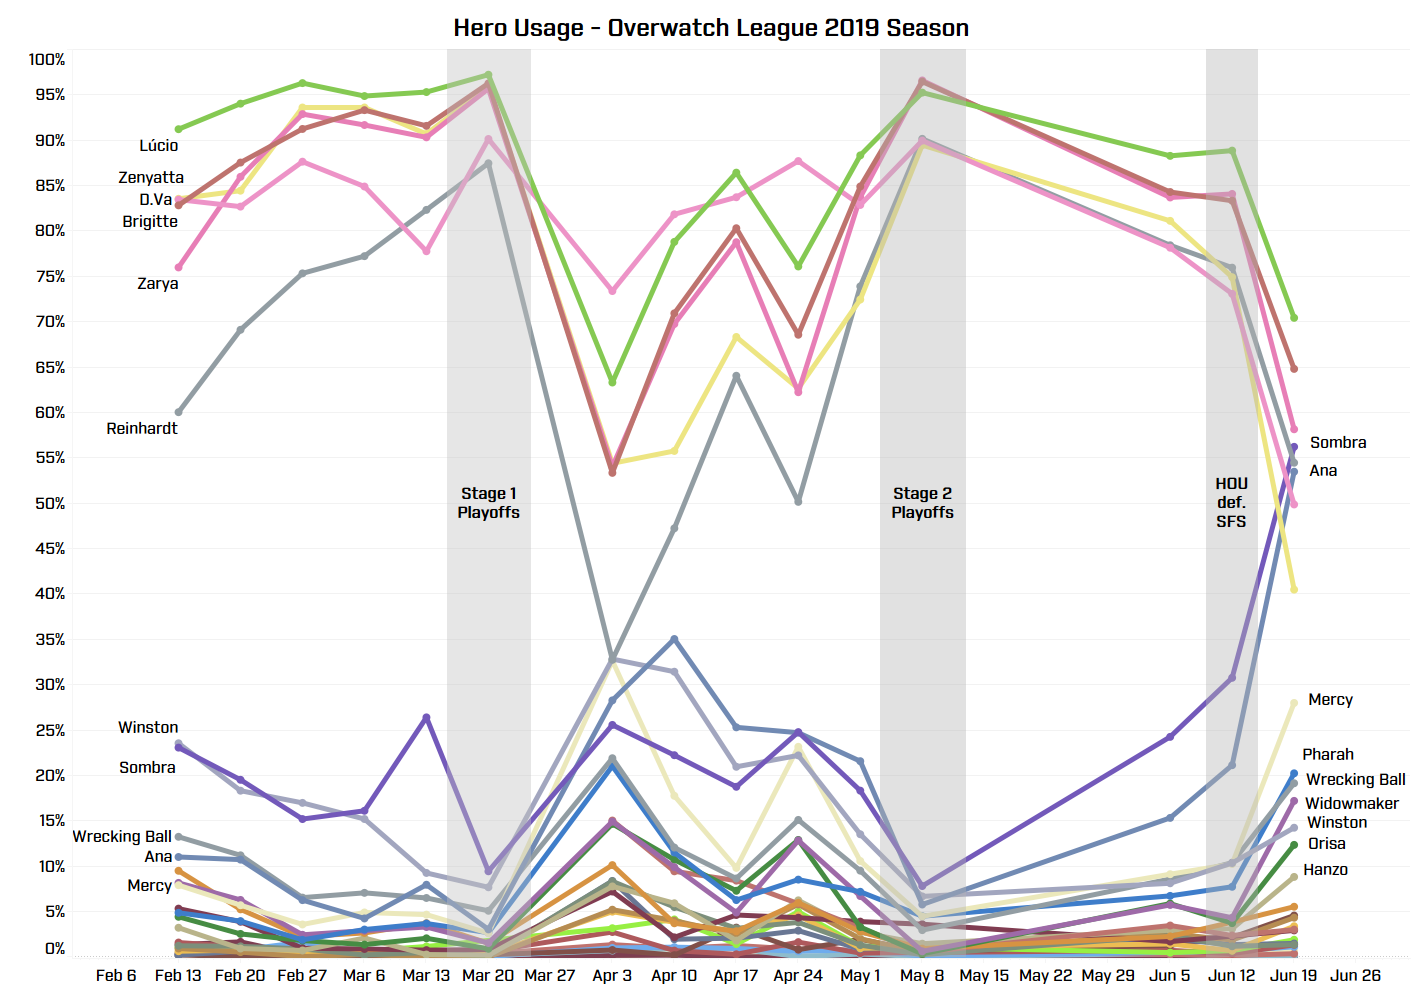 Weekly Overwatch League hero usage for the 2019 season